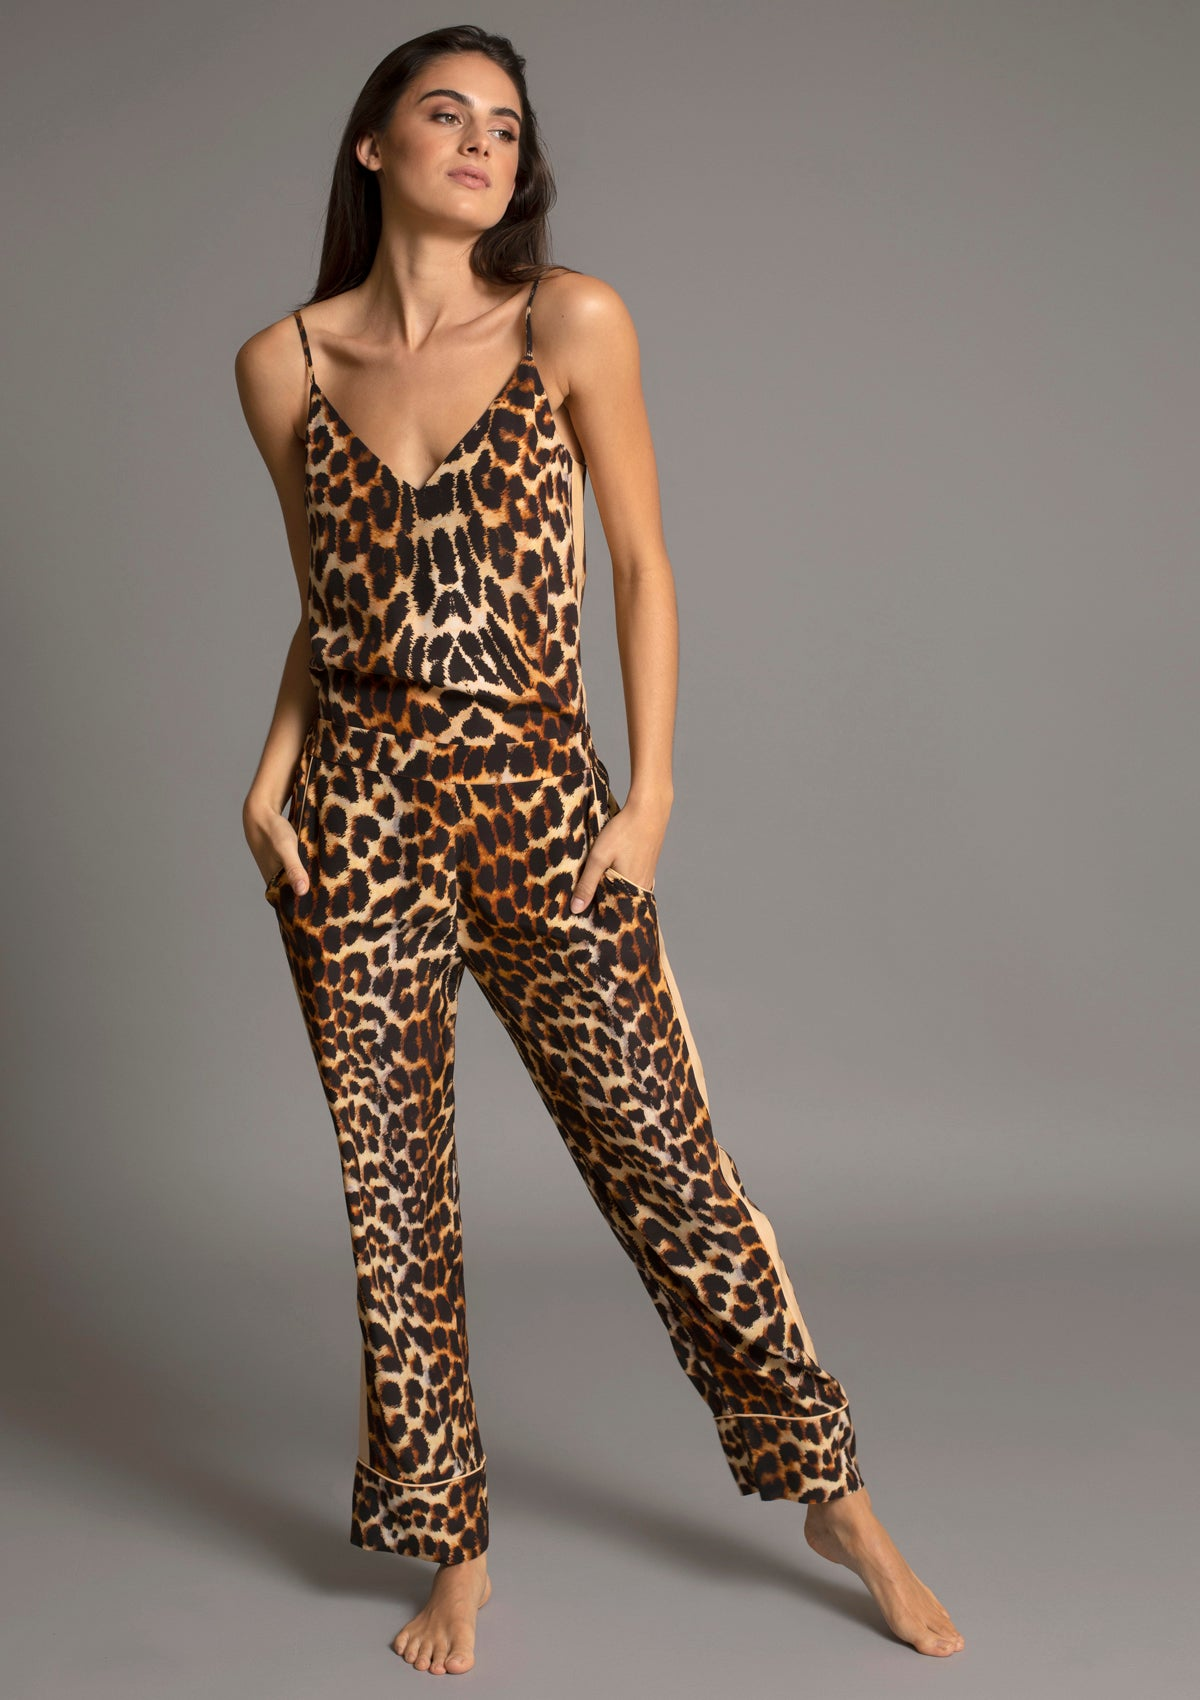 MARILYN V NECK CAMISOLE in LEOPARD w CAMEL TUXEDO STRIPE